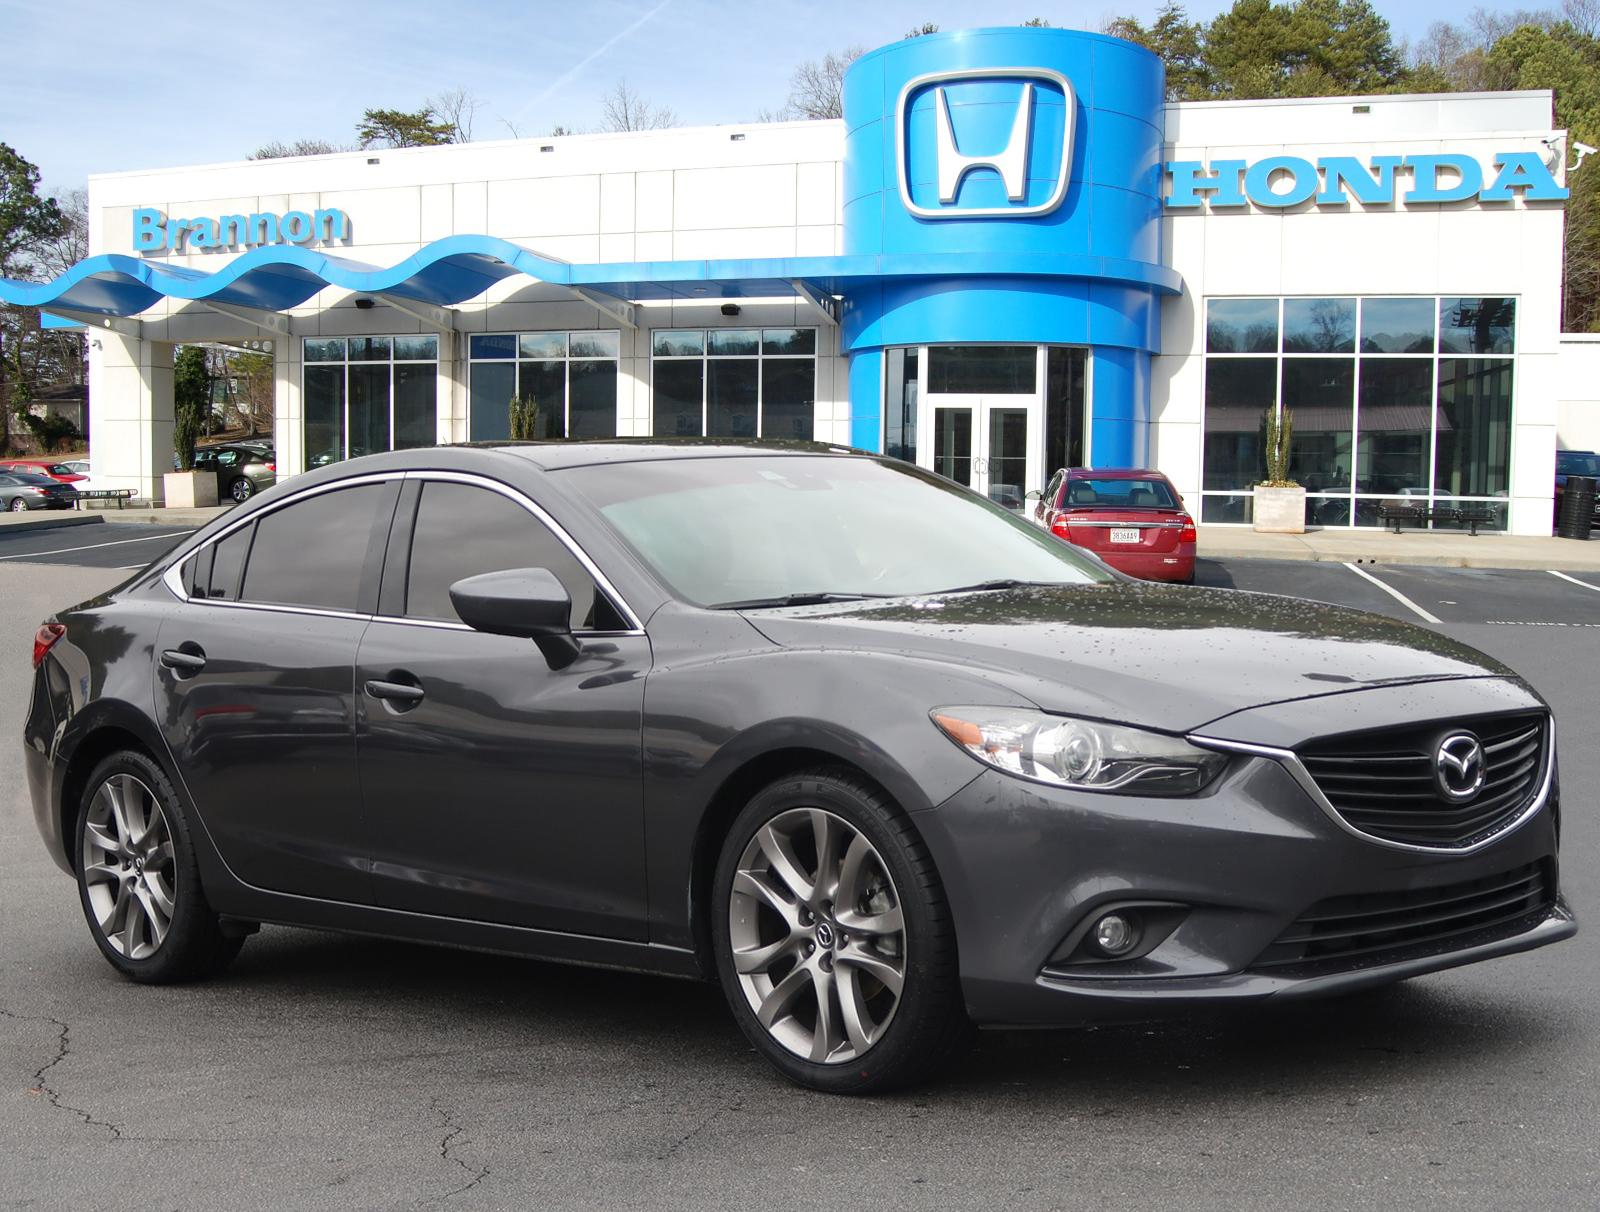 Pre-Owned 2015 MAZDA Mazda6 4dr Sdn Auto i Grand Touring